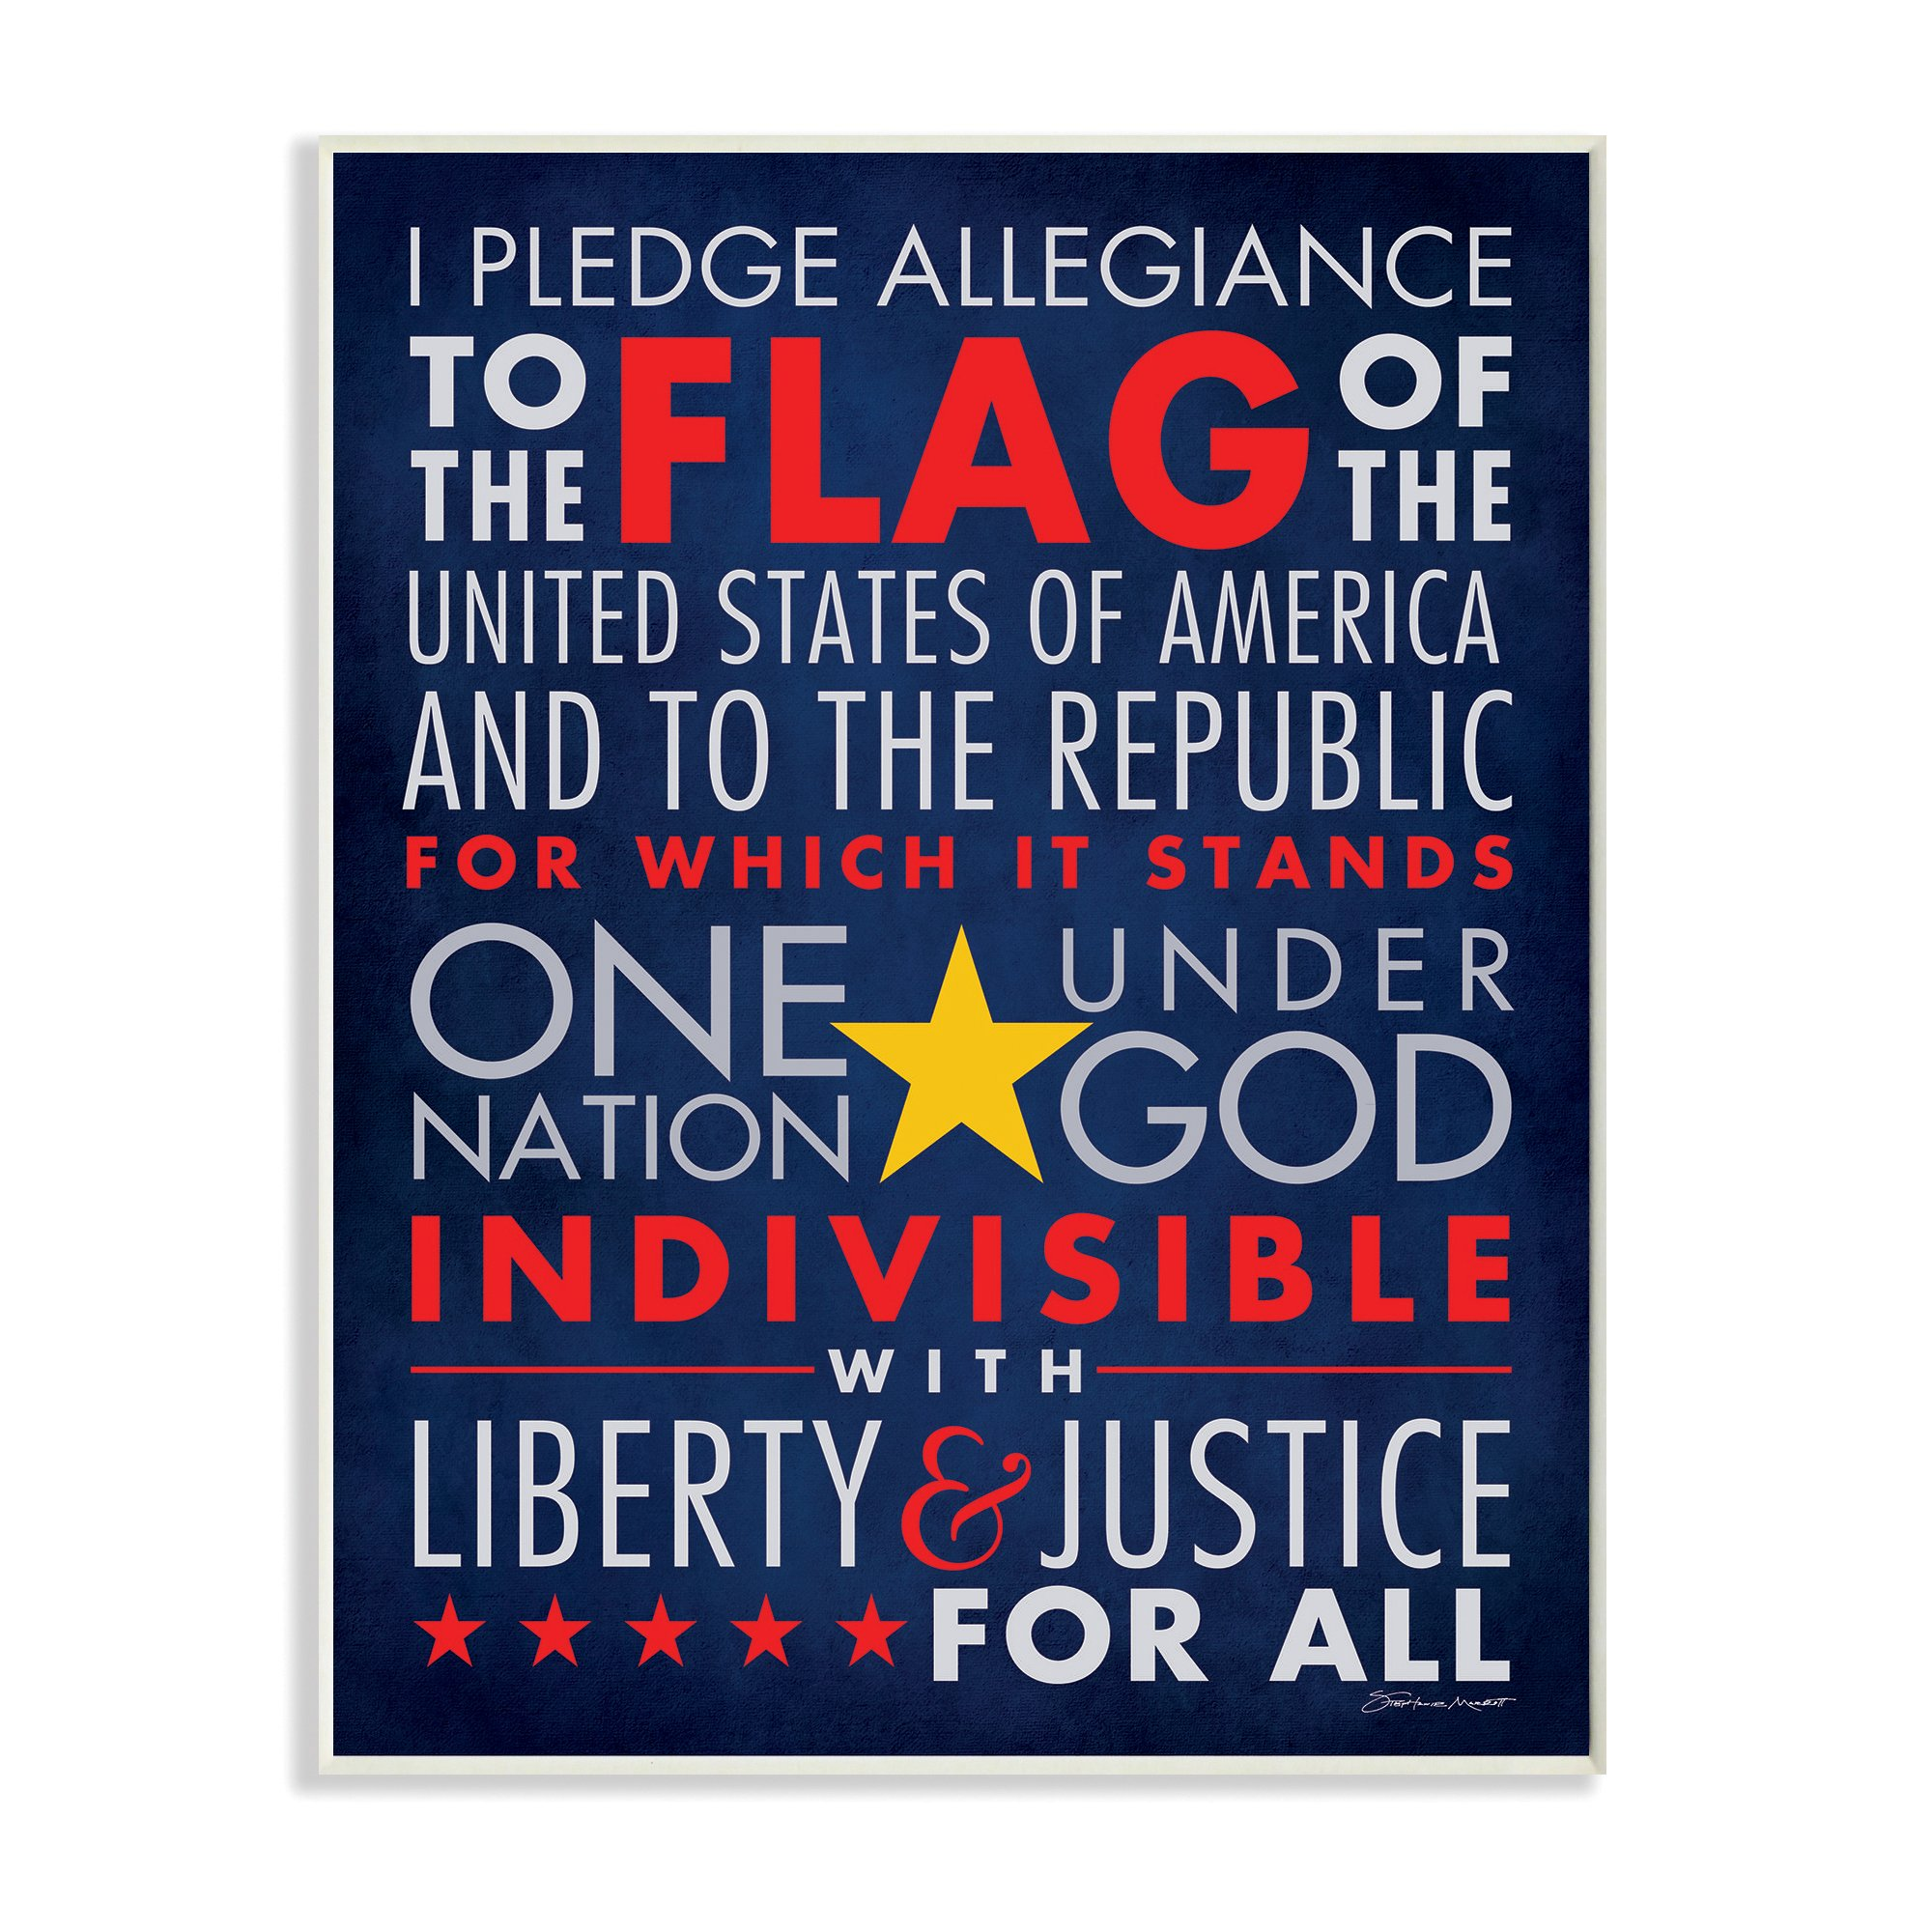 The Kids Room by Stupell The Pledge of Allegiance Textual Art Wall Plaque, 11 x 0.5 x 15, Proudly Made in USA by The Kids Room by Stupell